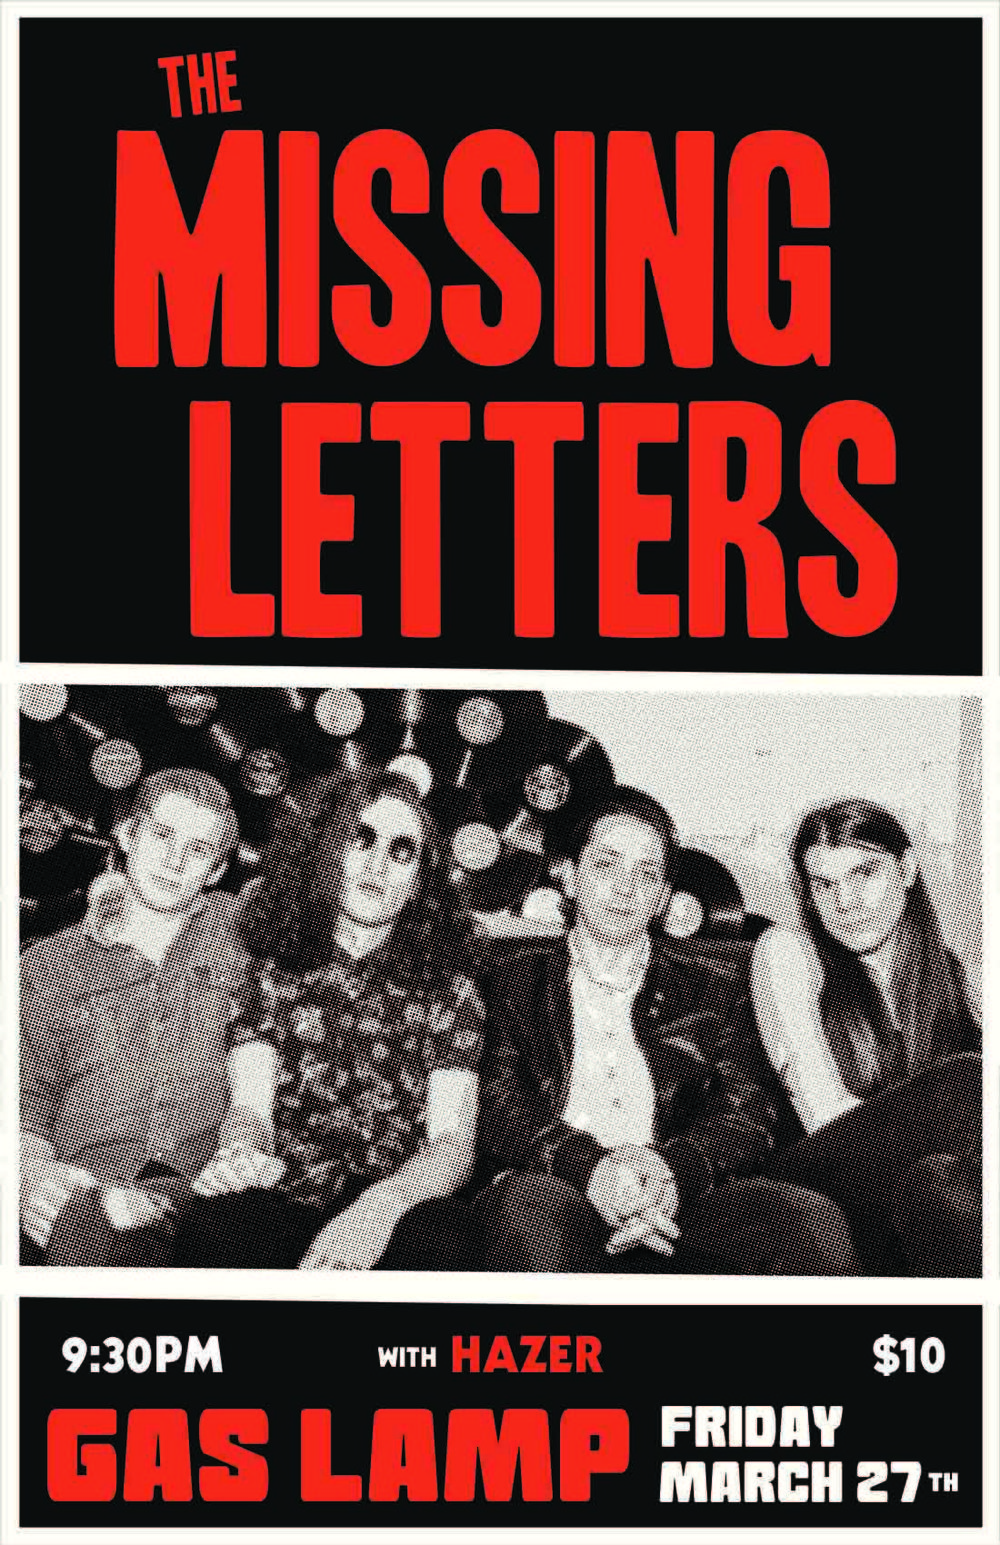 The_missing_letters_mar_27_copy